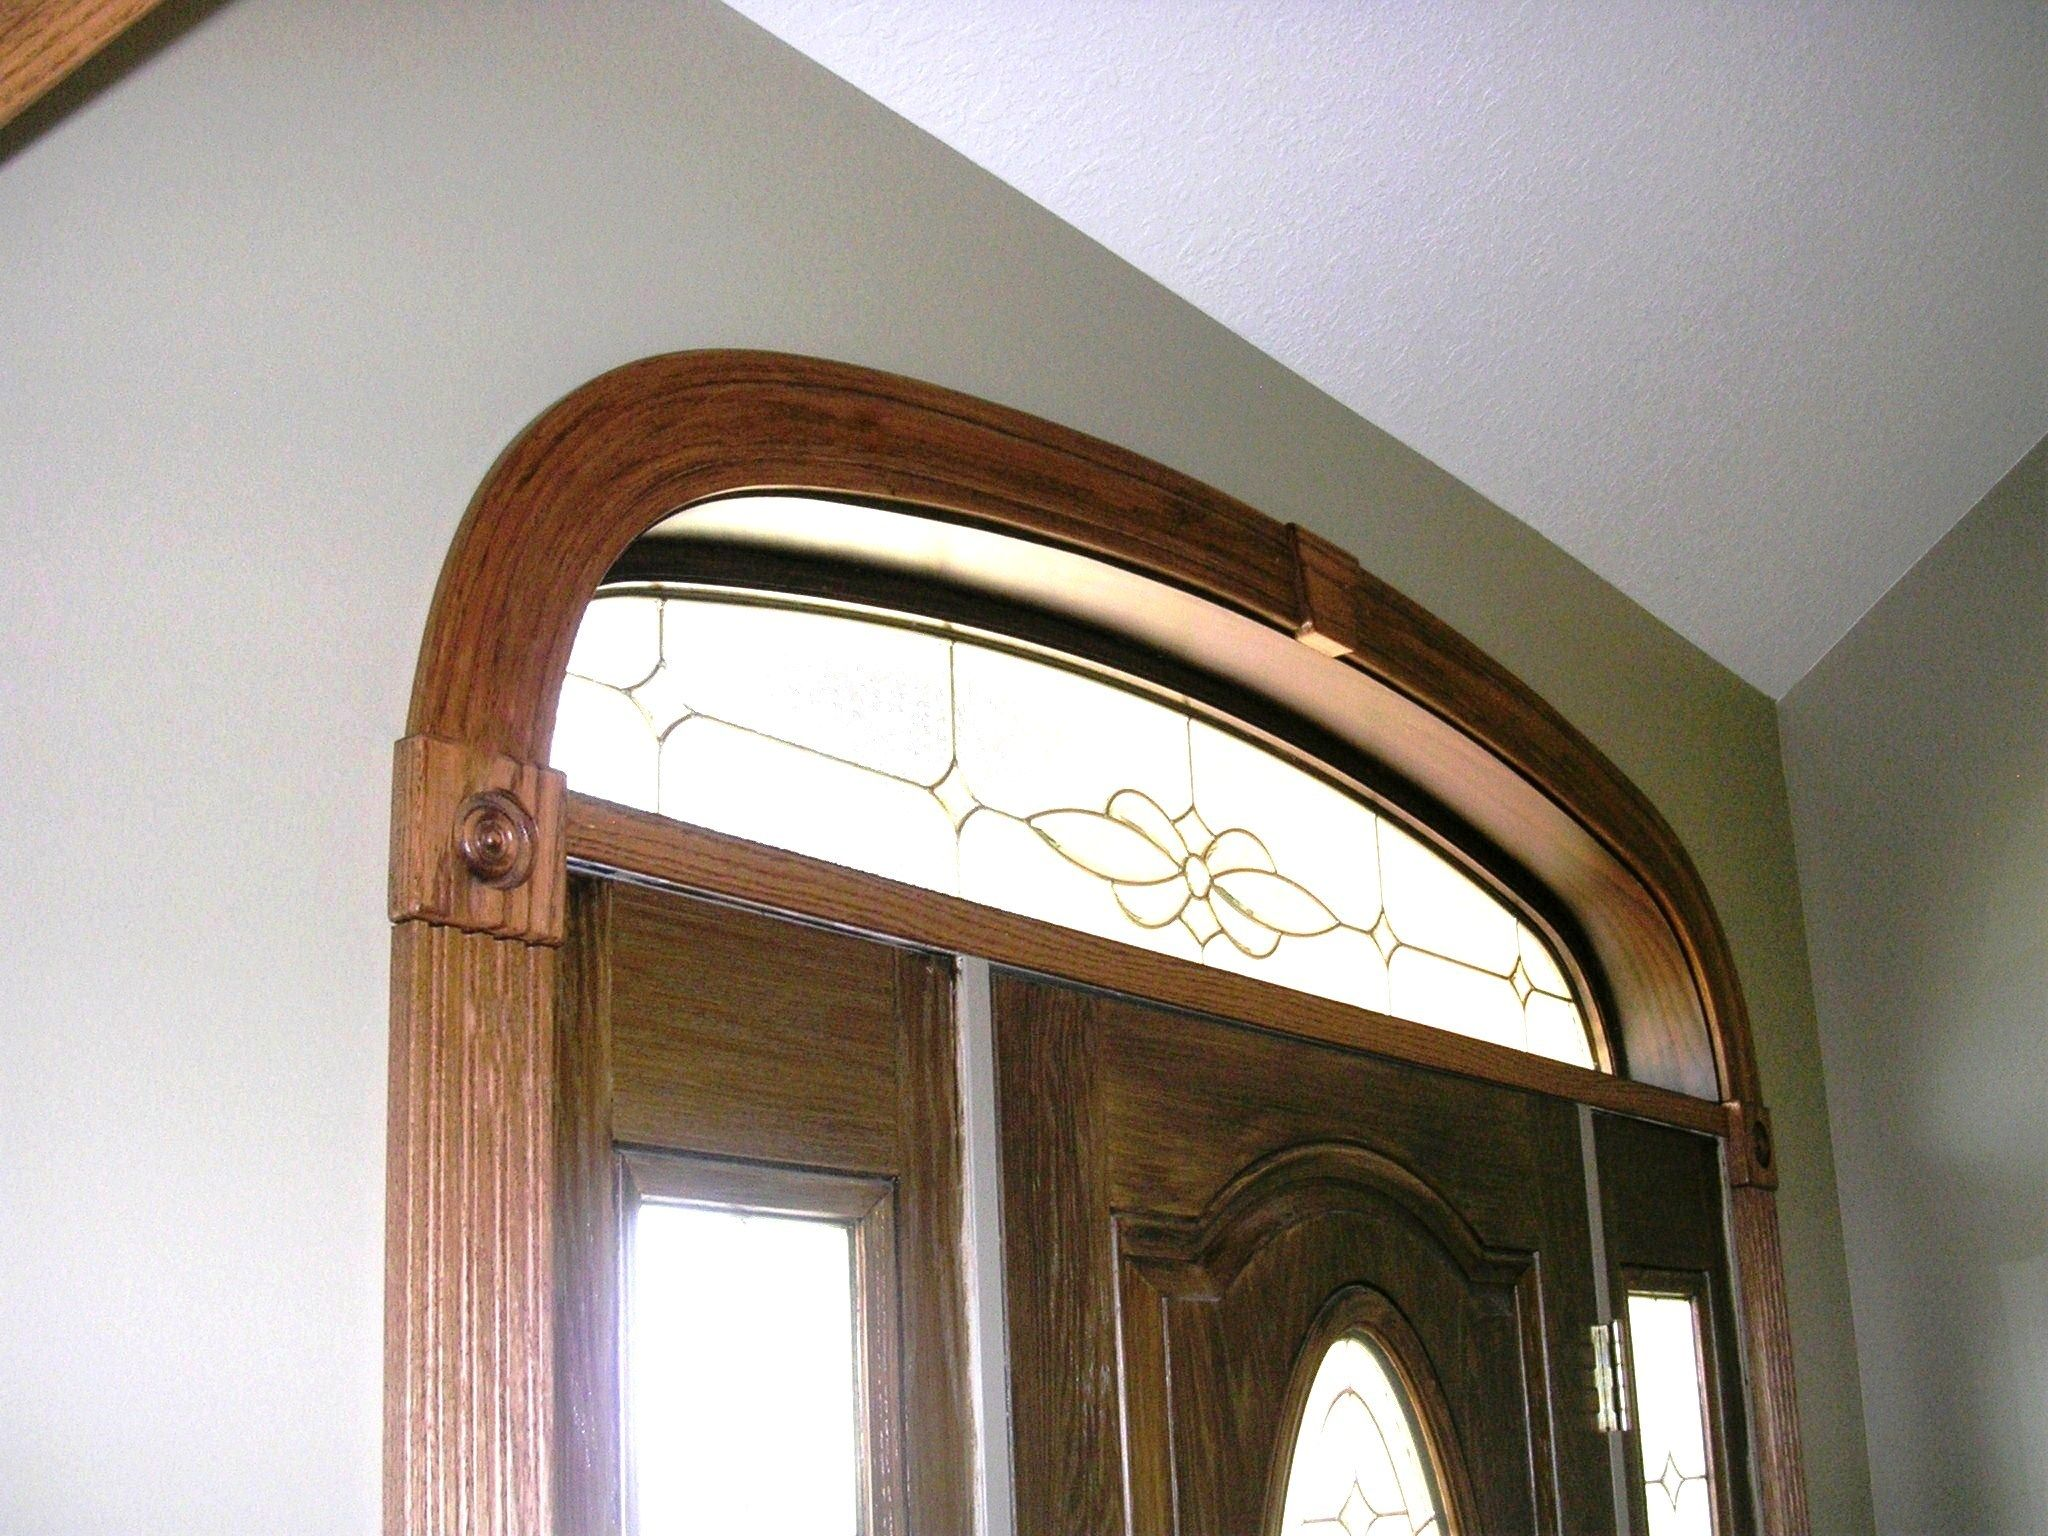 Curved Arch Molding Curved Molding Production Secrets From The 1 Curved Molding Shop In Arch Molding Molding Elliptical